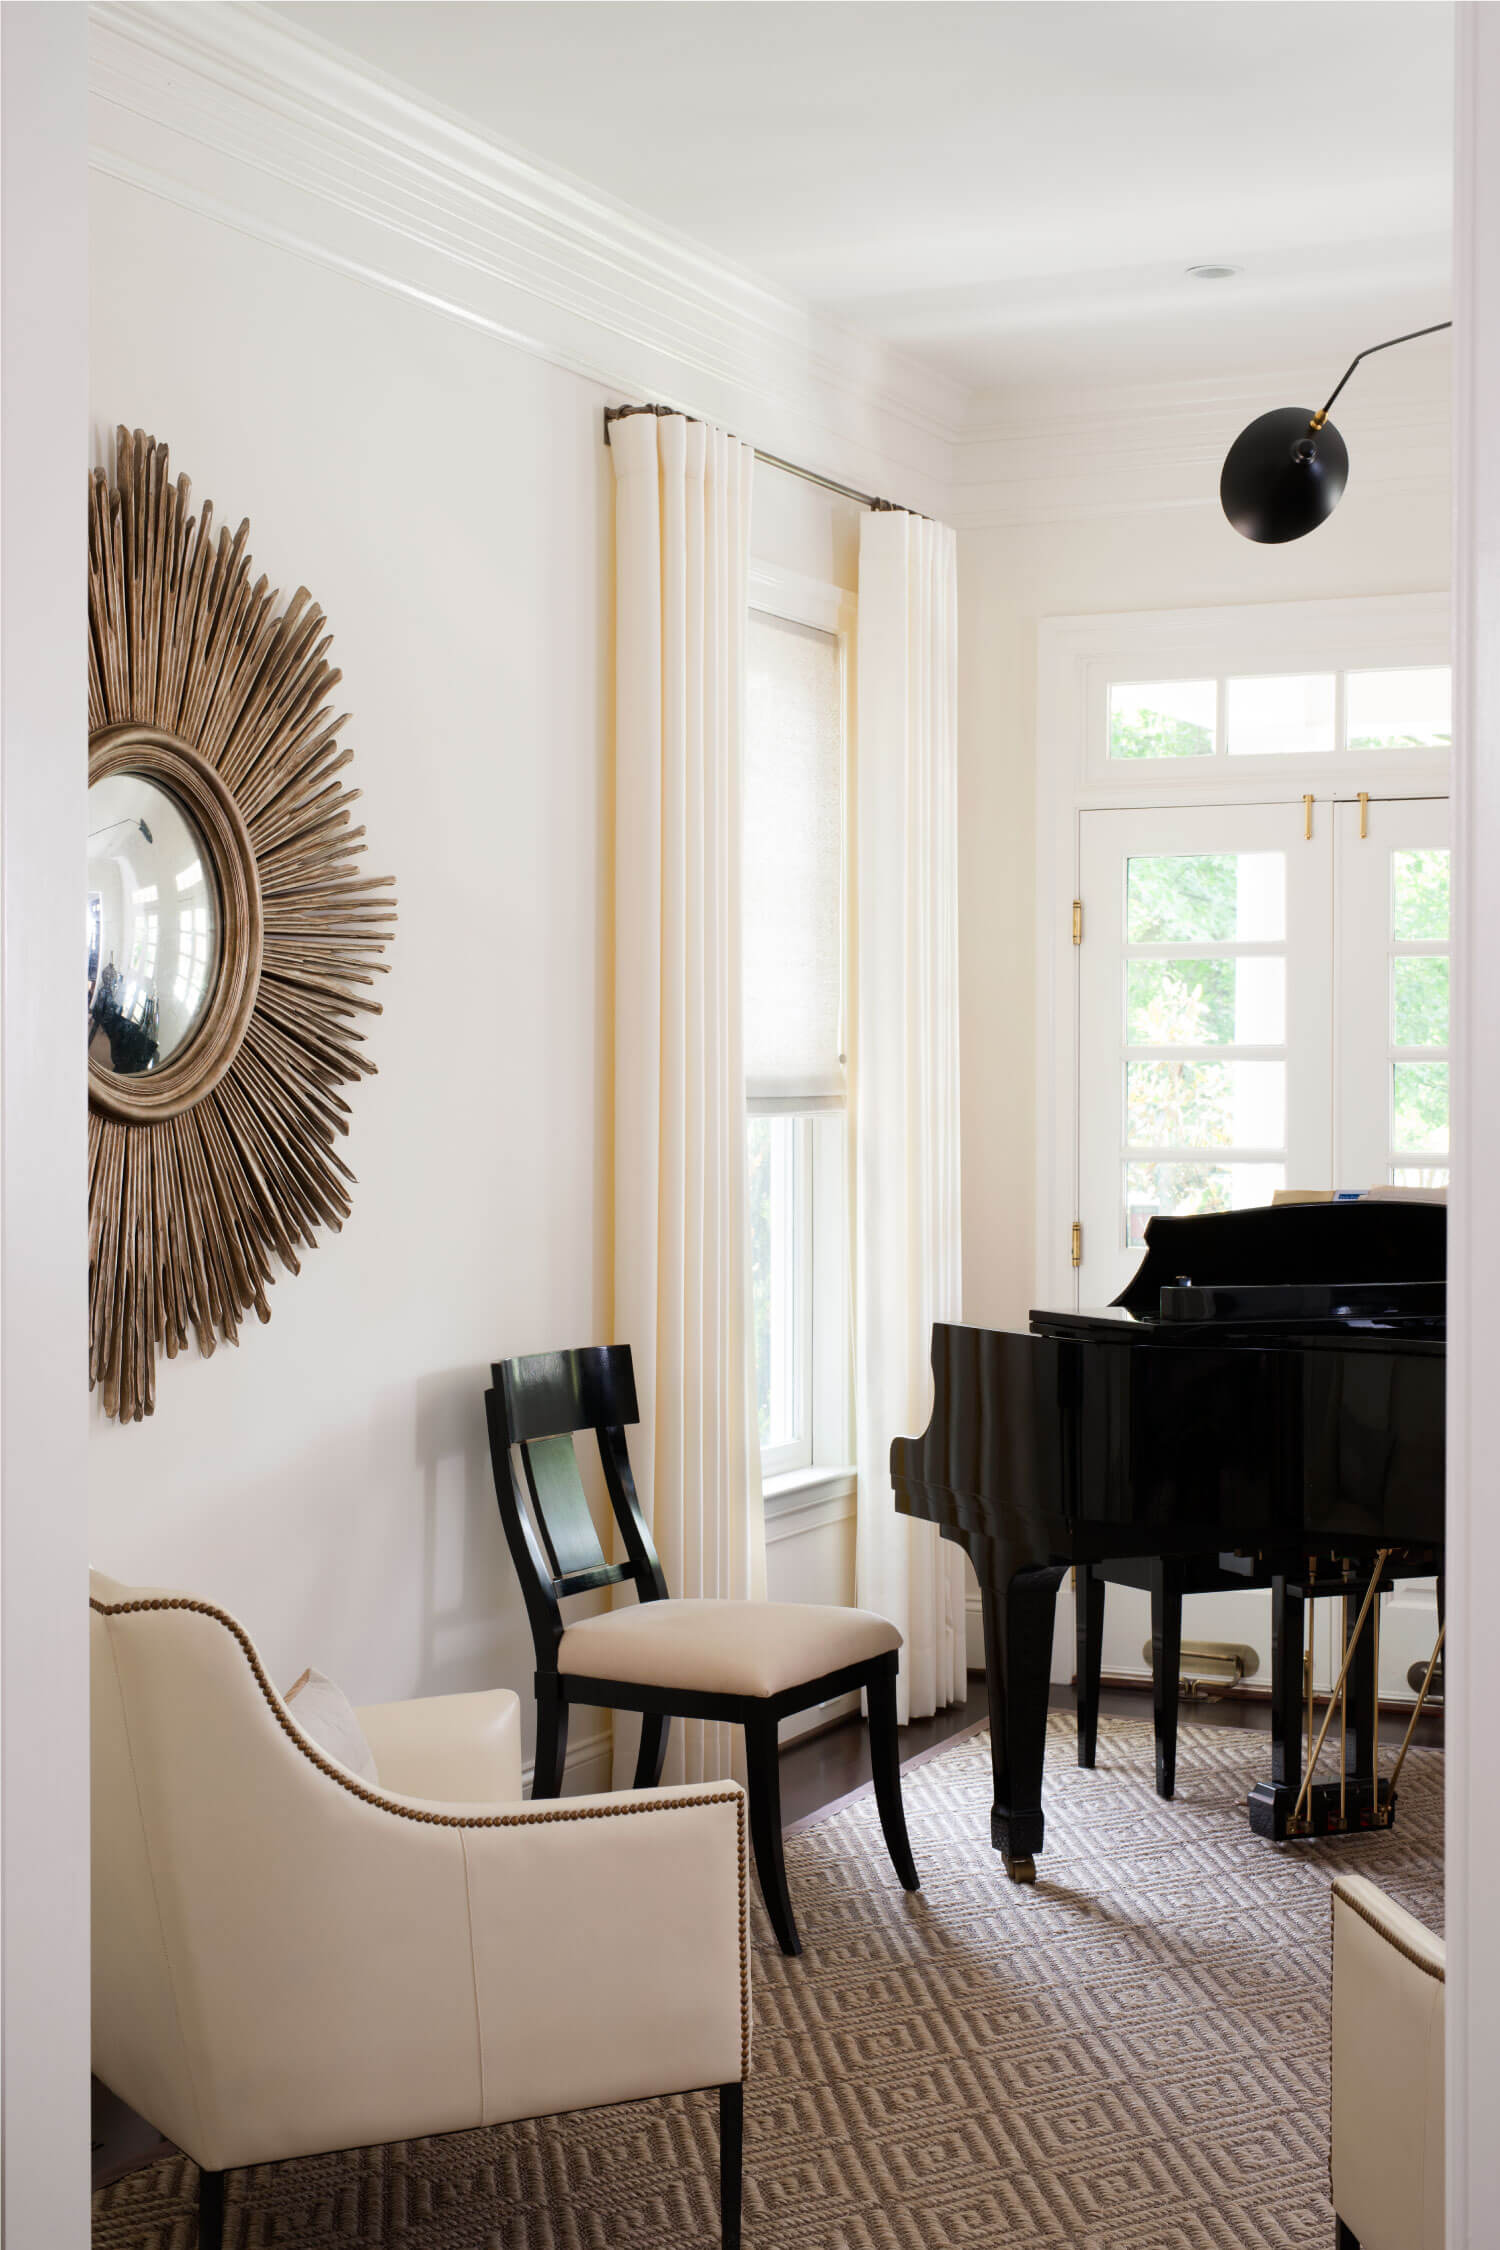 Ella Scott Design Is An Award Winning Interior Design Firm Located In  Bethesda, MD. We Serve Clients Throughout The Washington, DC Area Including  Chevy ...